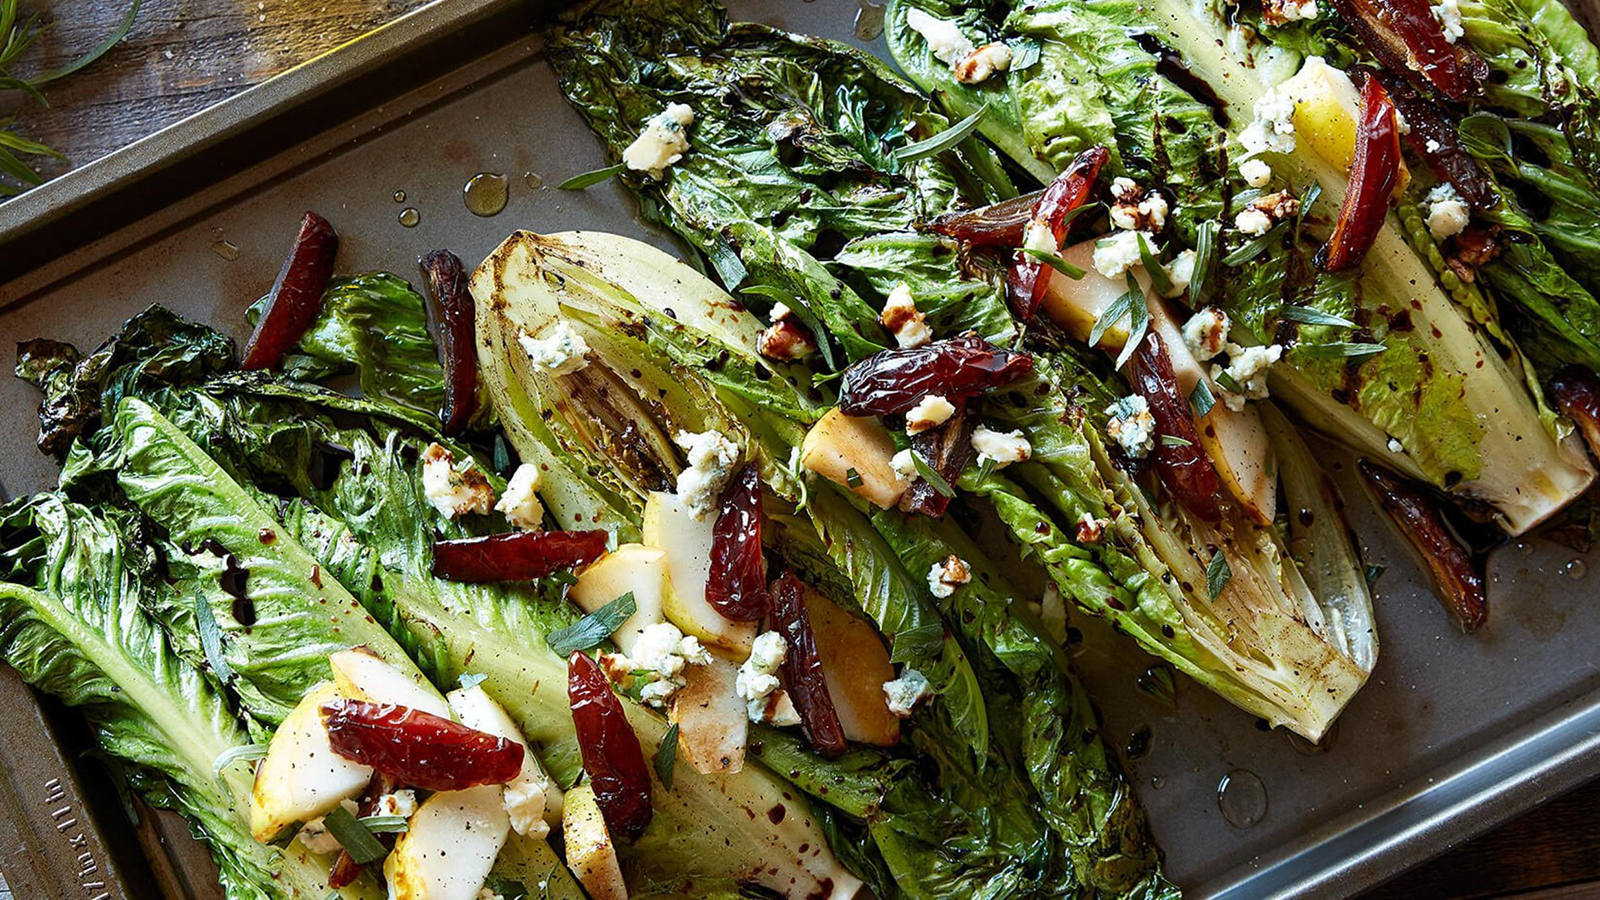 Balsamic-Glazed-Grilled-Romaine-Hearts-with-Blue-Cheese,-Medjool-Dates-&-Pears